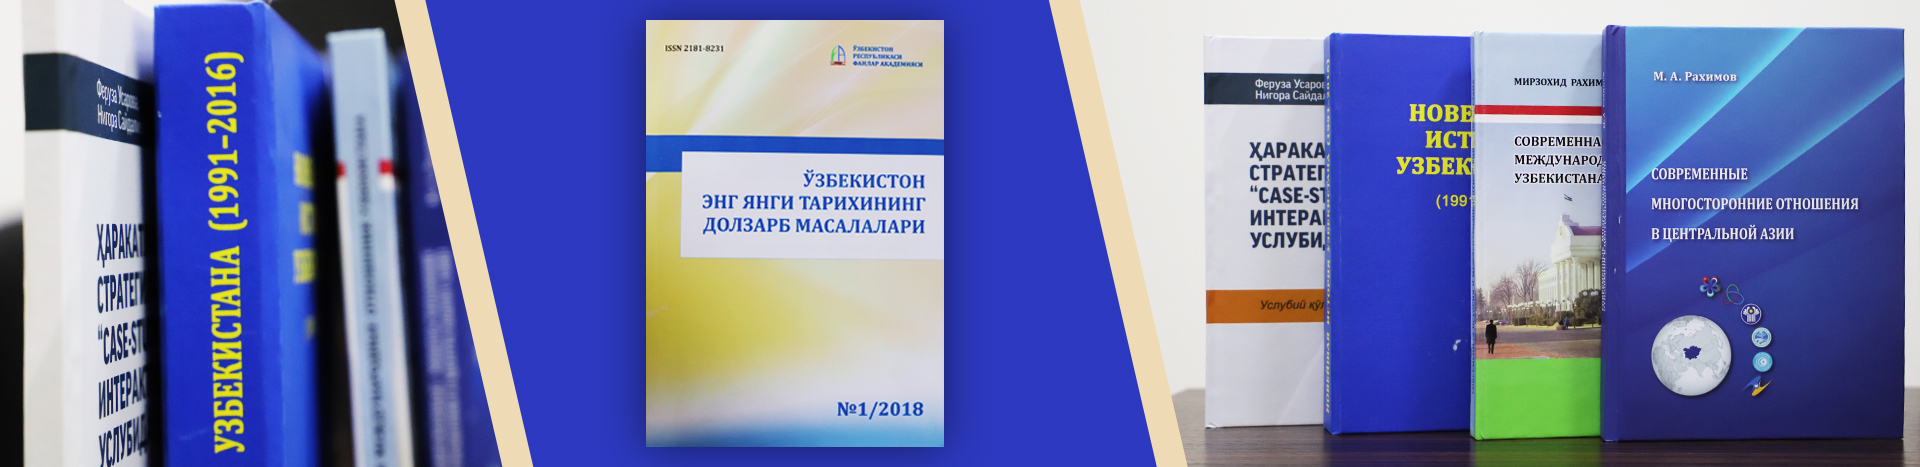 Coordinating and Methodological Center for Modern History of Uzbekistan